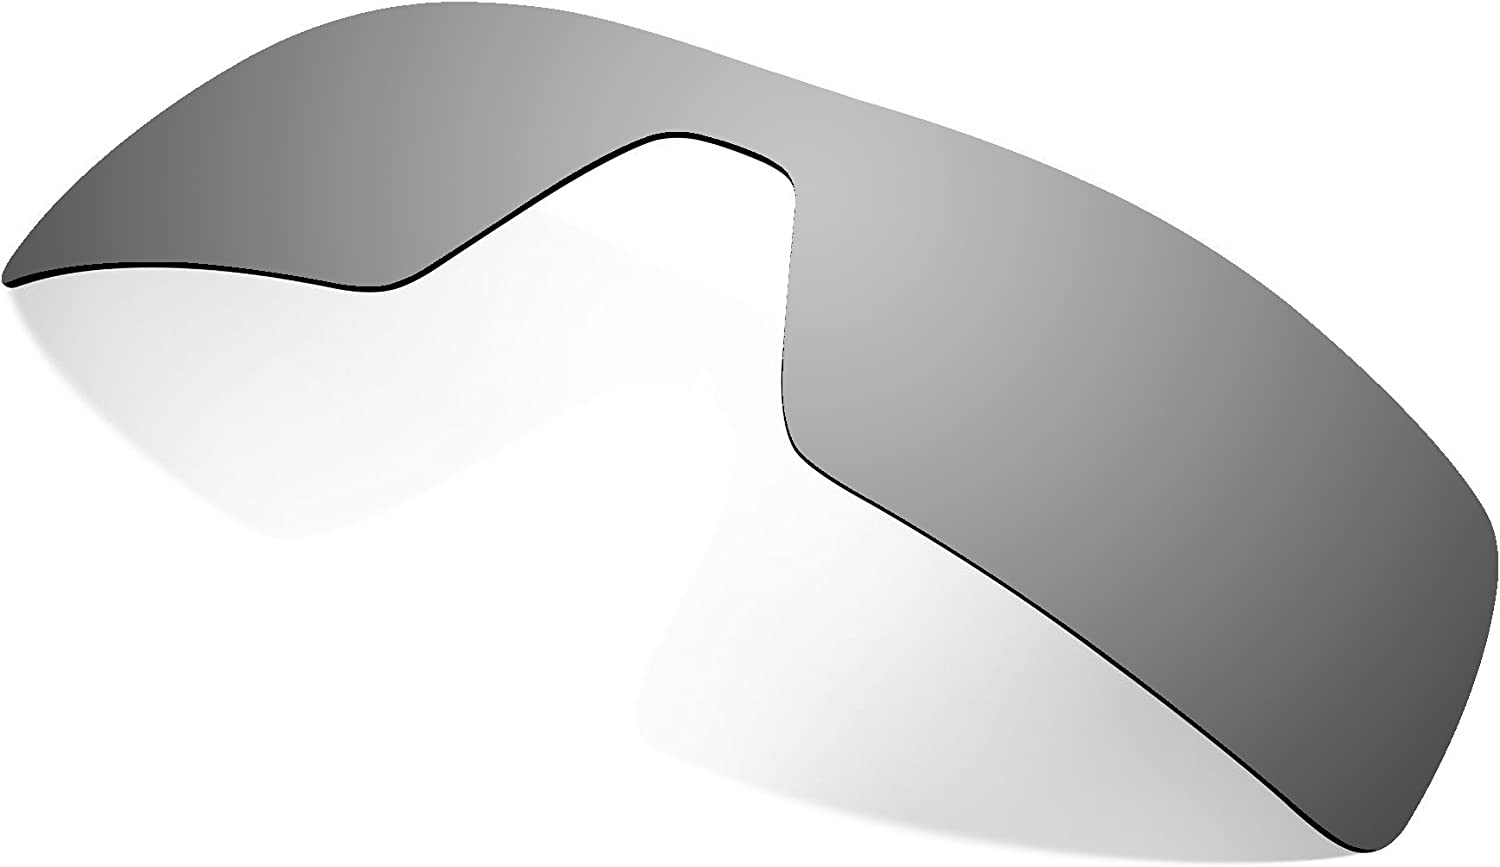 Littlebird4 Polarized Replacement Japan Maker New Lenses for Rig Max 90% OFF S Oil II Oakley